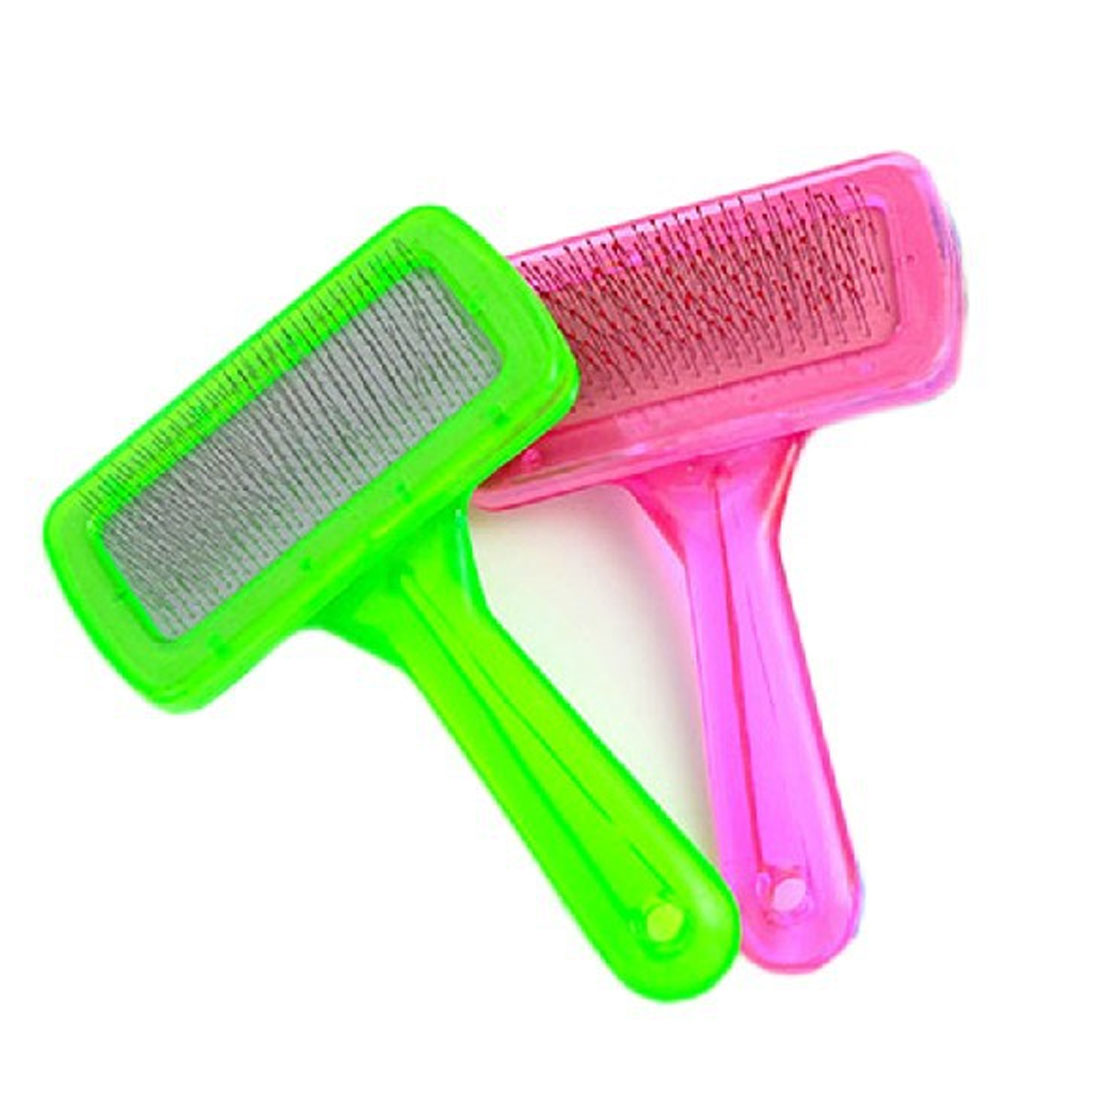 Fashion Comb For Dogs Pet Comb Brush Cat Dog Hair Grooming Brush Comb Stainless steel Needle For Animals Cleaning Pet Products(China (Mainland))